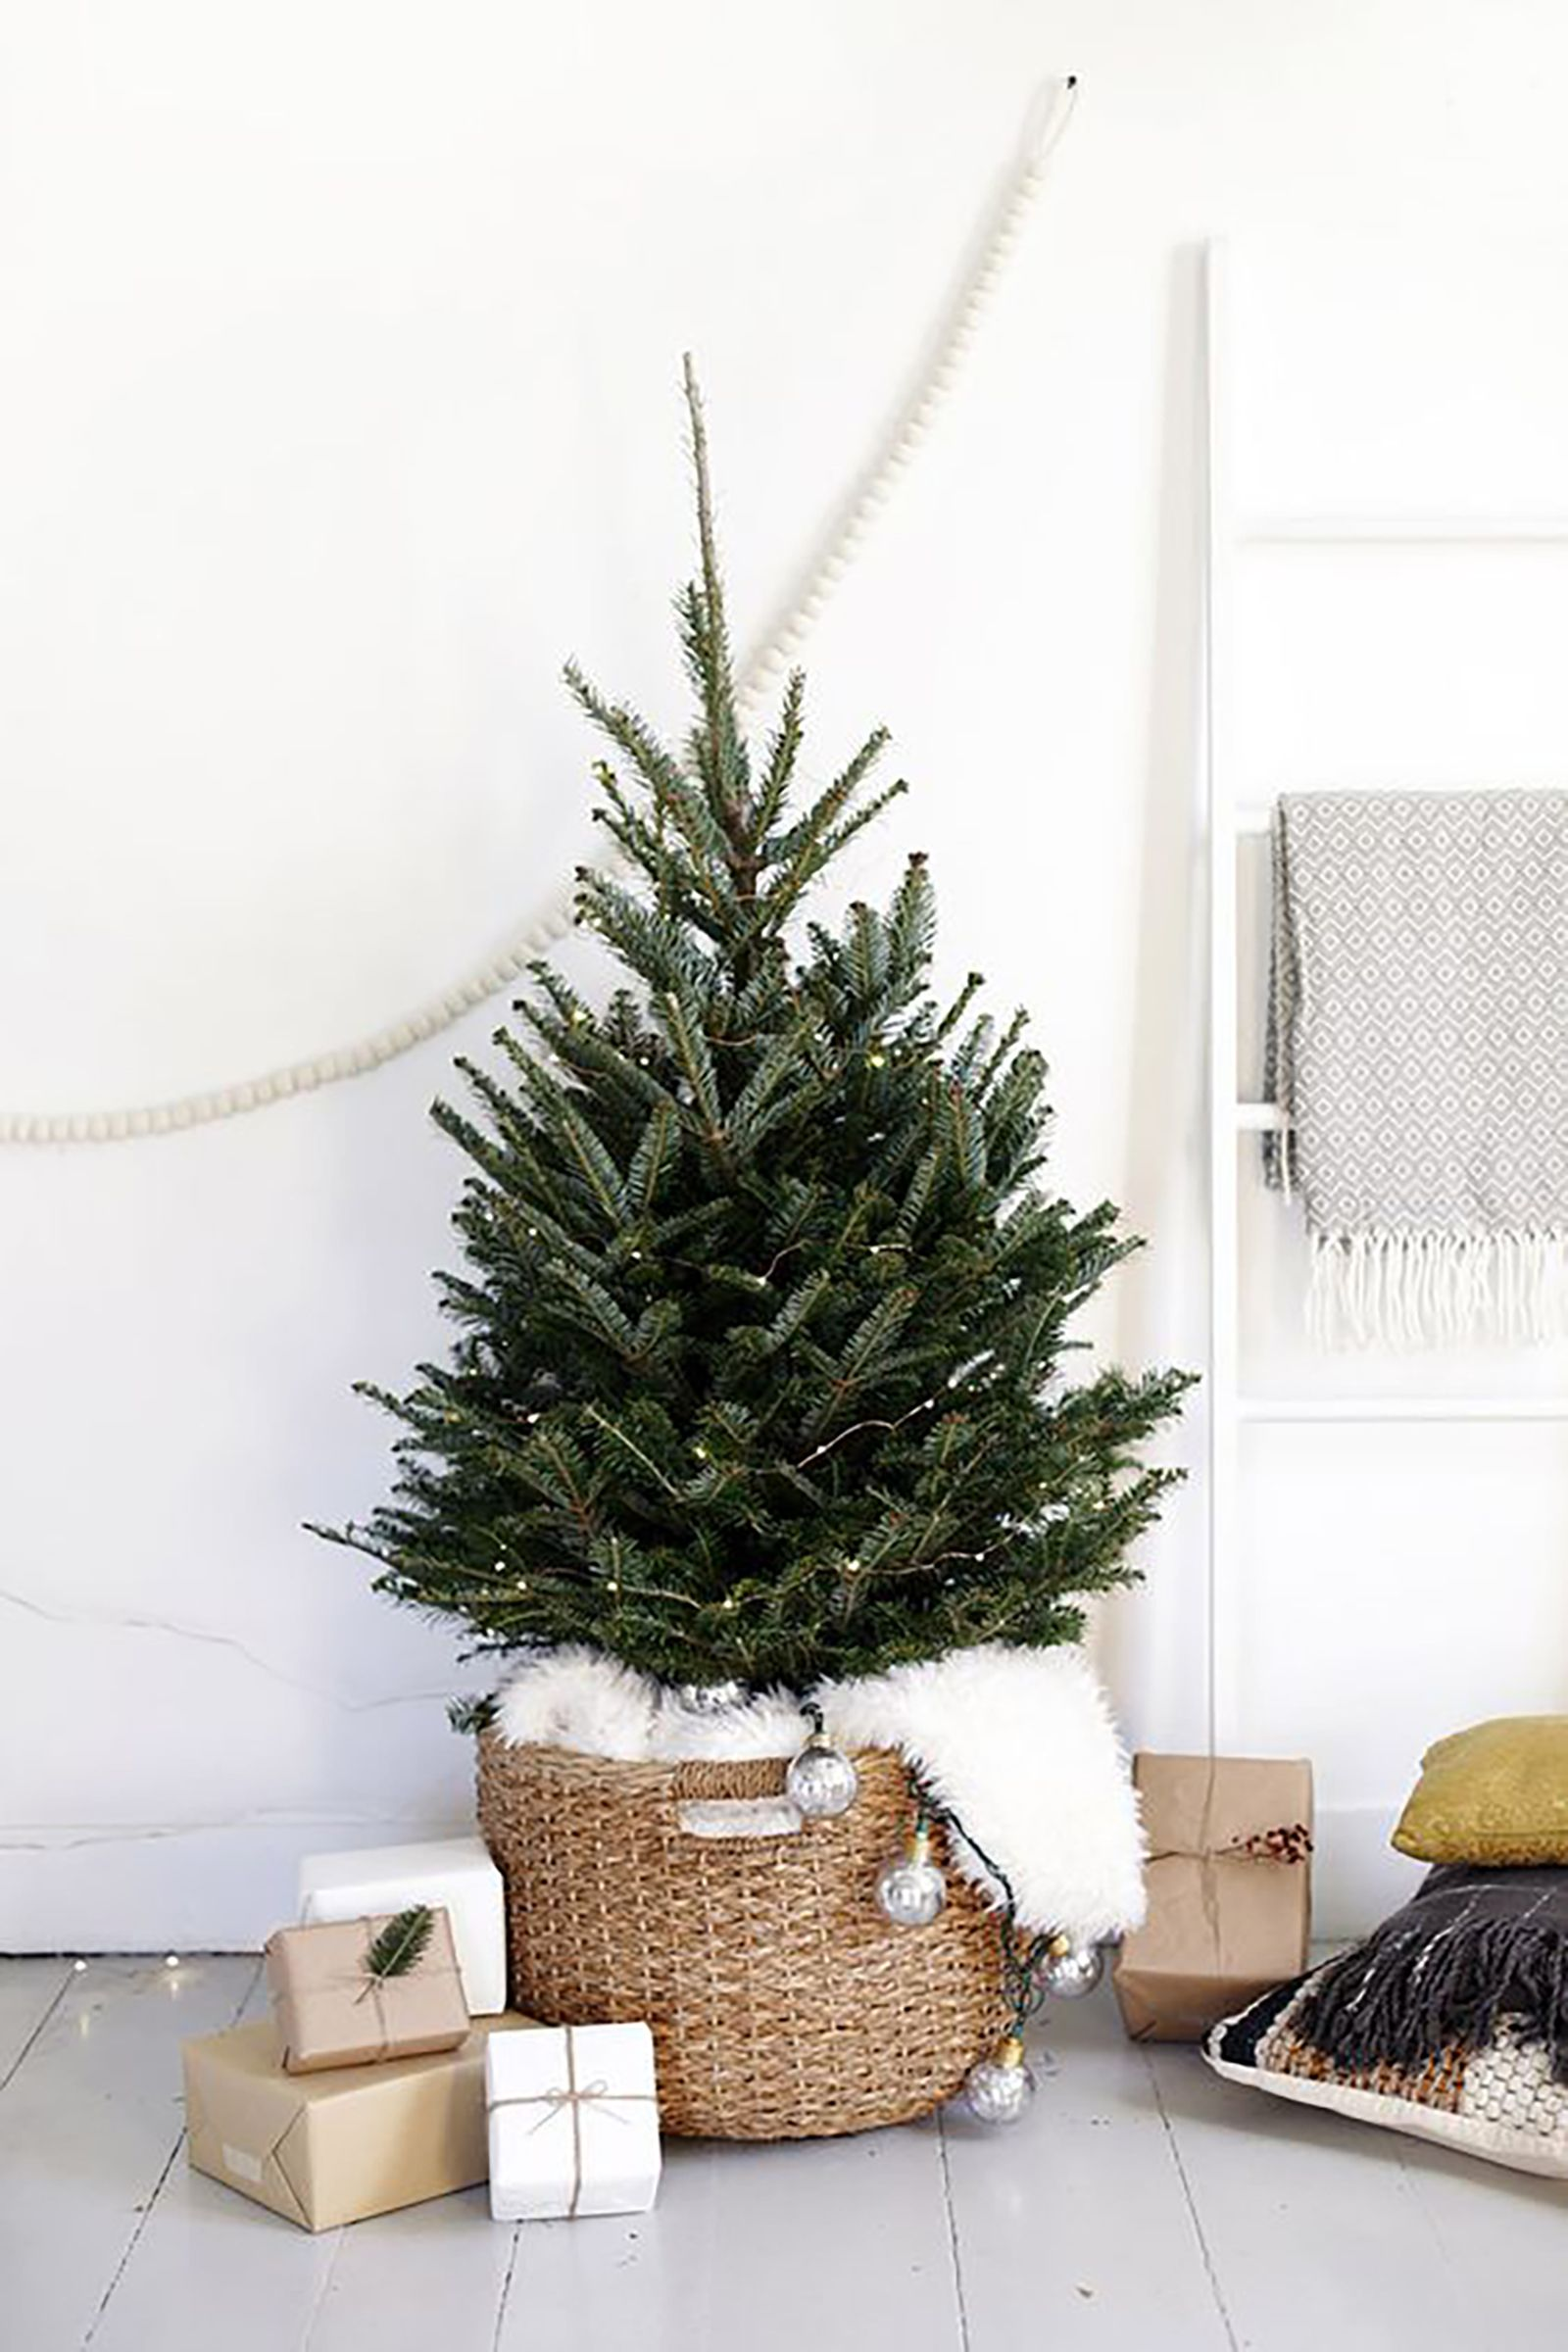 23 Best Small Christmas Trees - Ideas for Decorating Mini Christmas ...